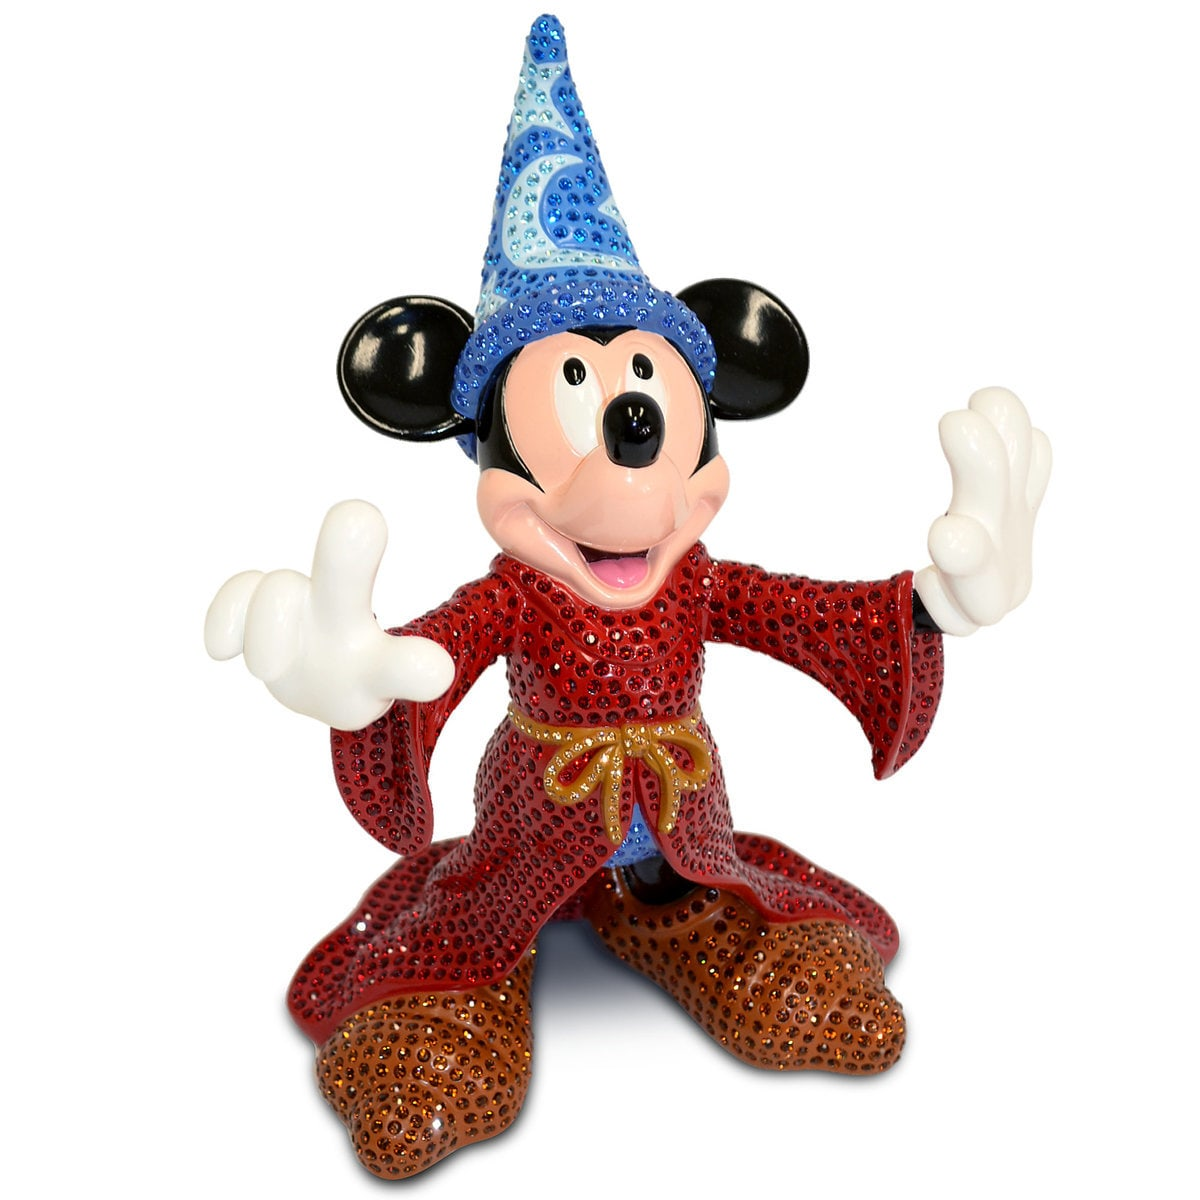 Fantasia Sorcerer Mickey Mouse Figurine by Arribas Brothers | shopDisney